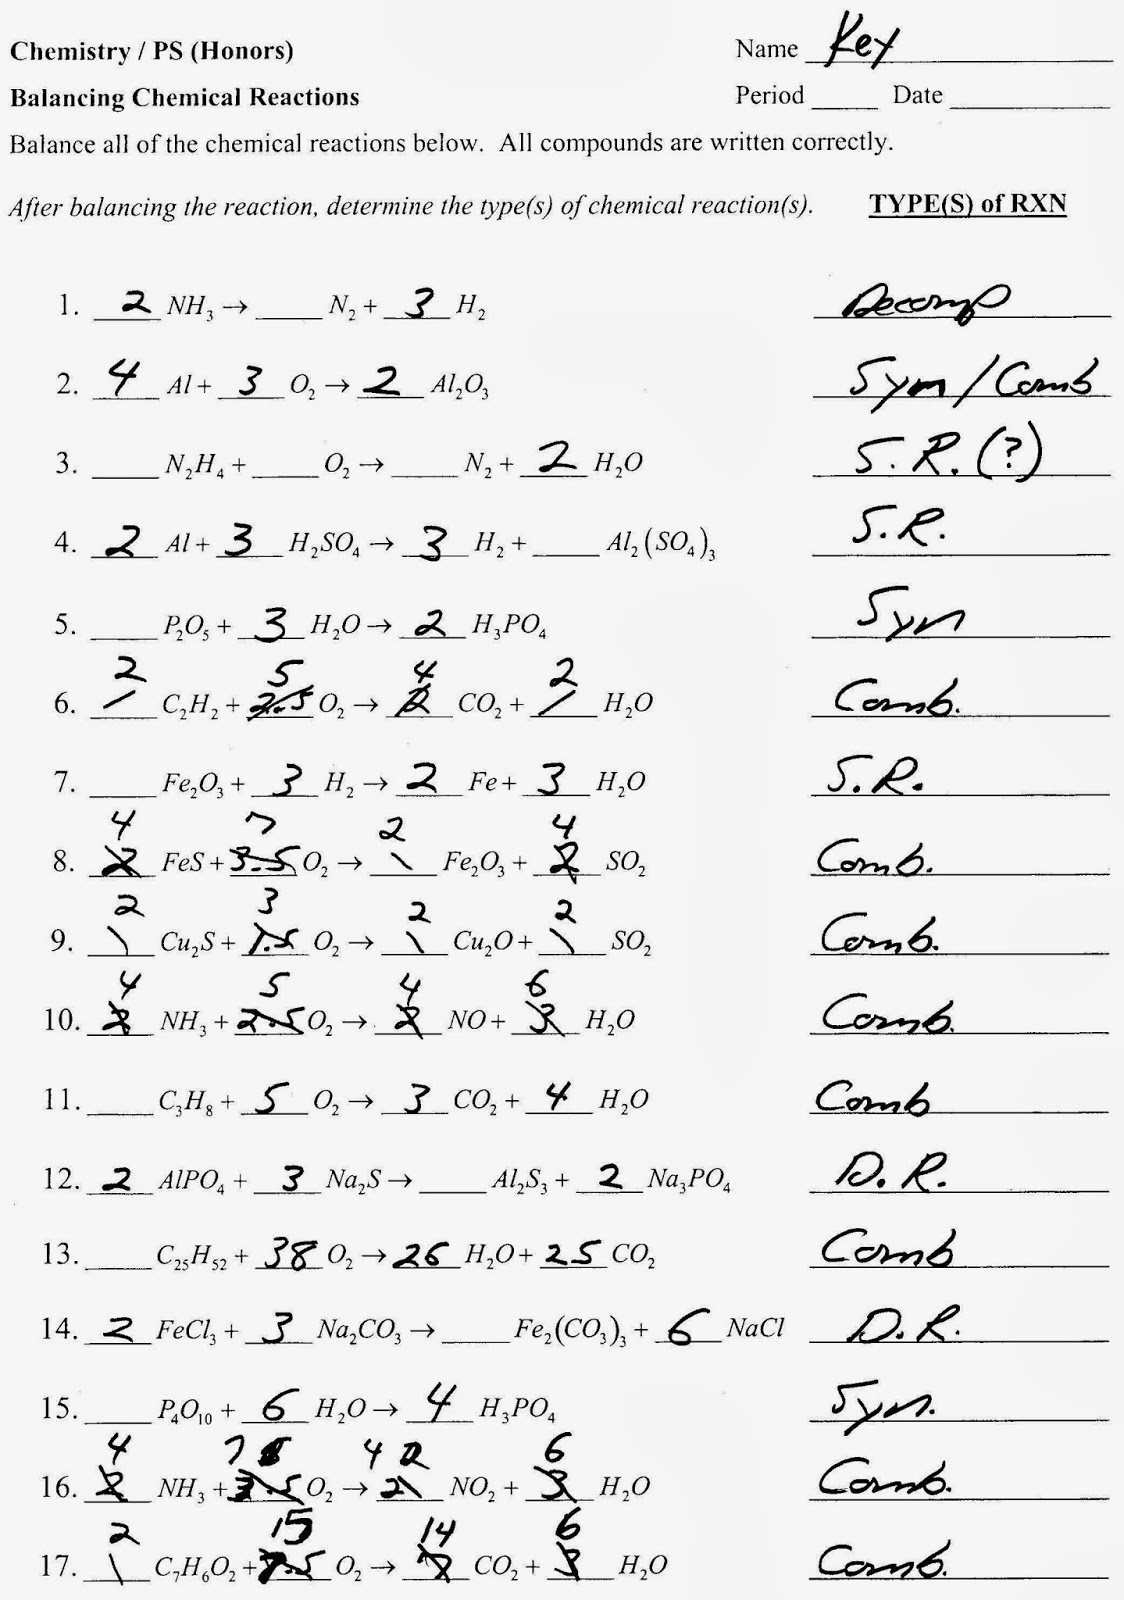 Aldiablosus  Splendid Balancing Chemical Equations Worksheets Balancing Chemical  With Excellent Balancing Chemical Equations Worksheet Answer Key On Chemistry Double With Endearing Rain Worksheets Also Algebraic Proofs Worksheet With Answers In Addition Number Bond Worksheets St Grade And Genetic Pedigree Worksheet As Well As Grade  Printable Worksheets Additionally Music Solfege Worksheets From Letstalkhiphopus With Aldiablosus  Excellent Balancing Chemical Equations Worksheets Balancing Chemical  With Endearing Balancing Chemical Equations Worksheet Answer Key On Chemistry Double And Splendid Rain Worksheets Also Algebraic Proofs Worksheet With Answers In Addition Number Bond Worksheets St Grade From Letstalkhiphopus